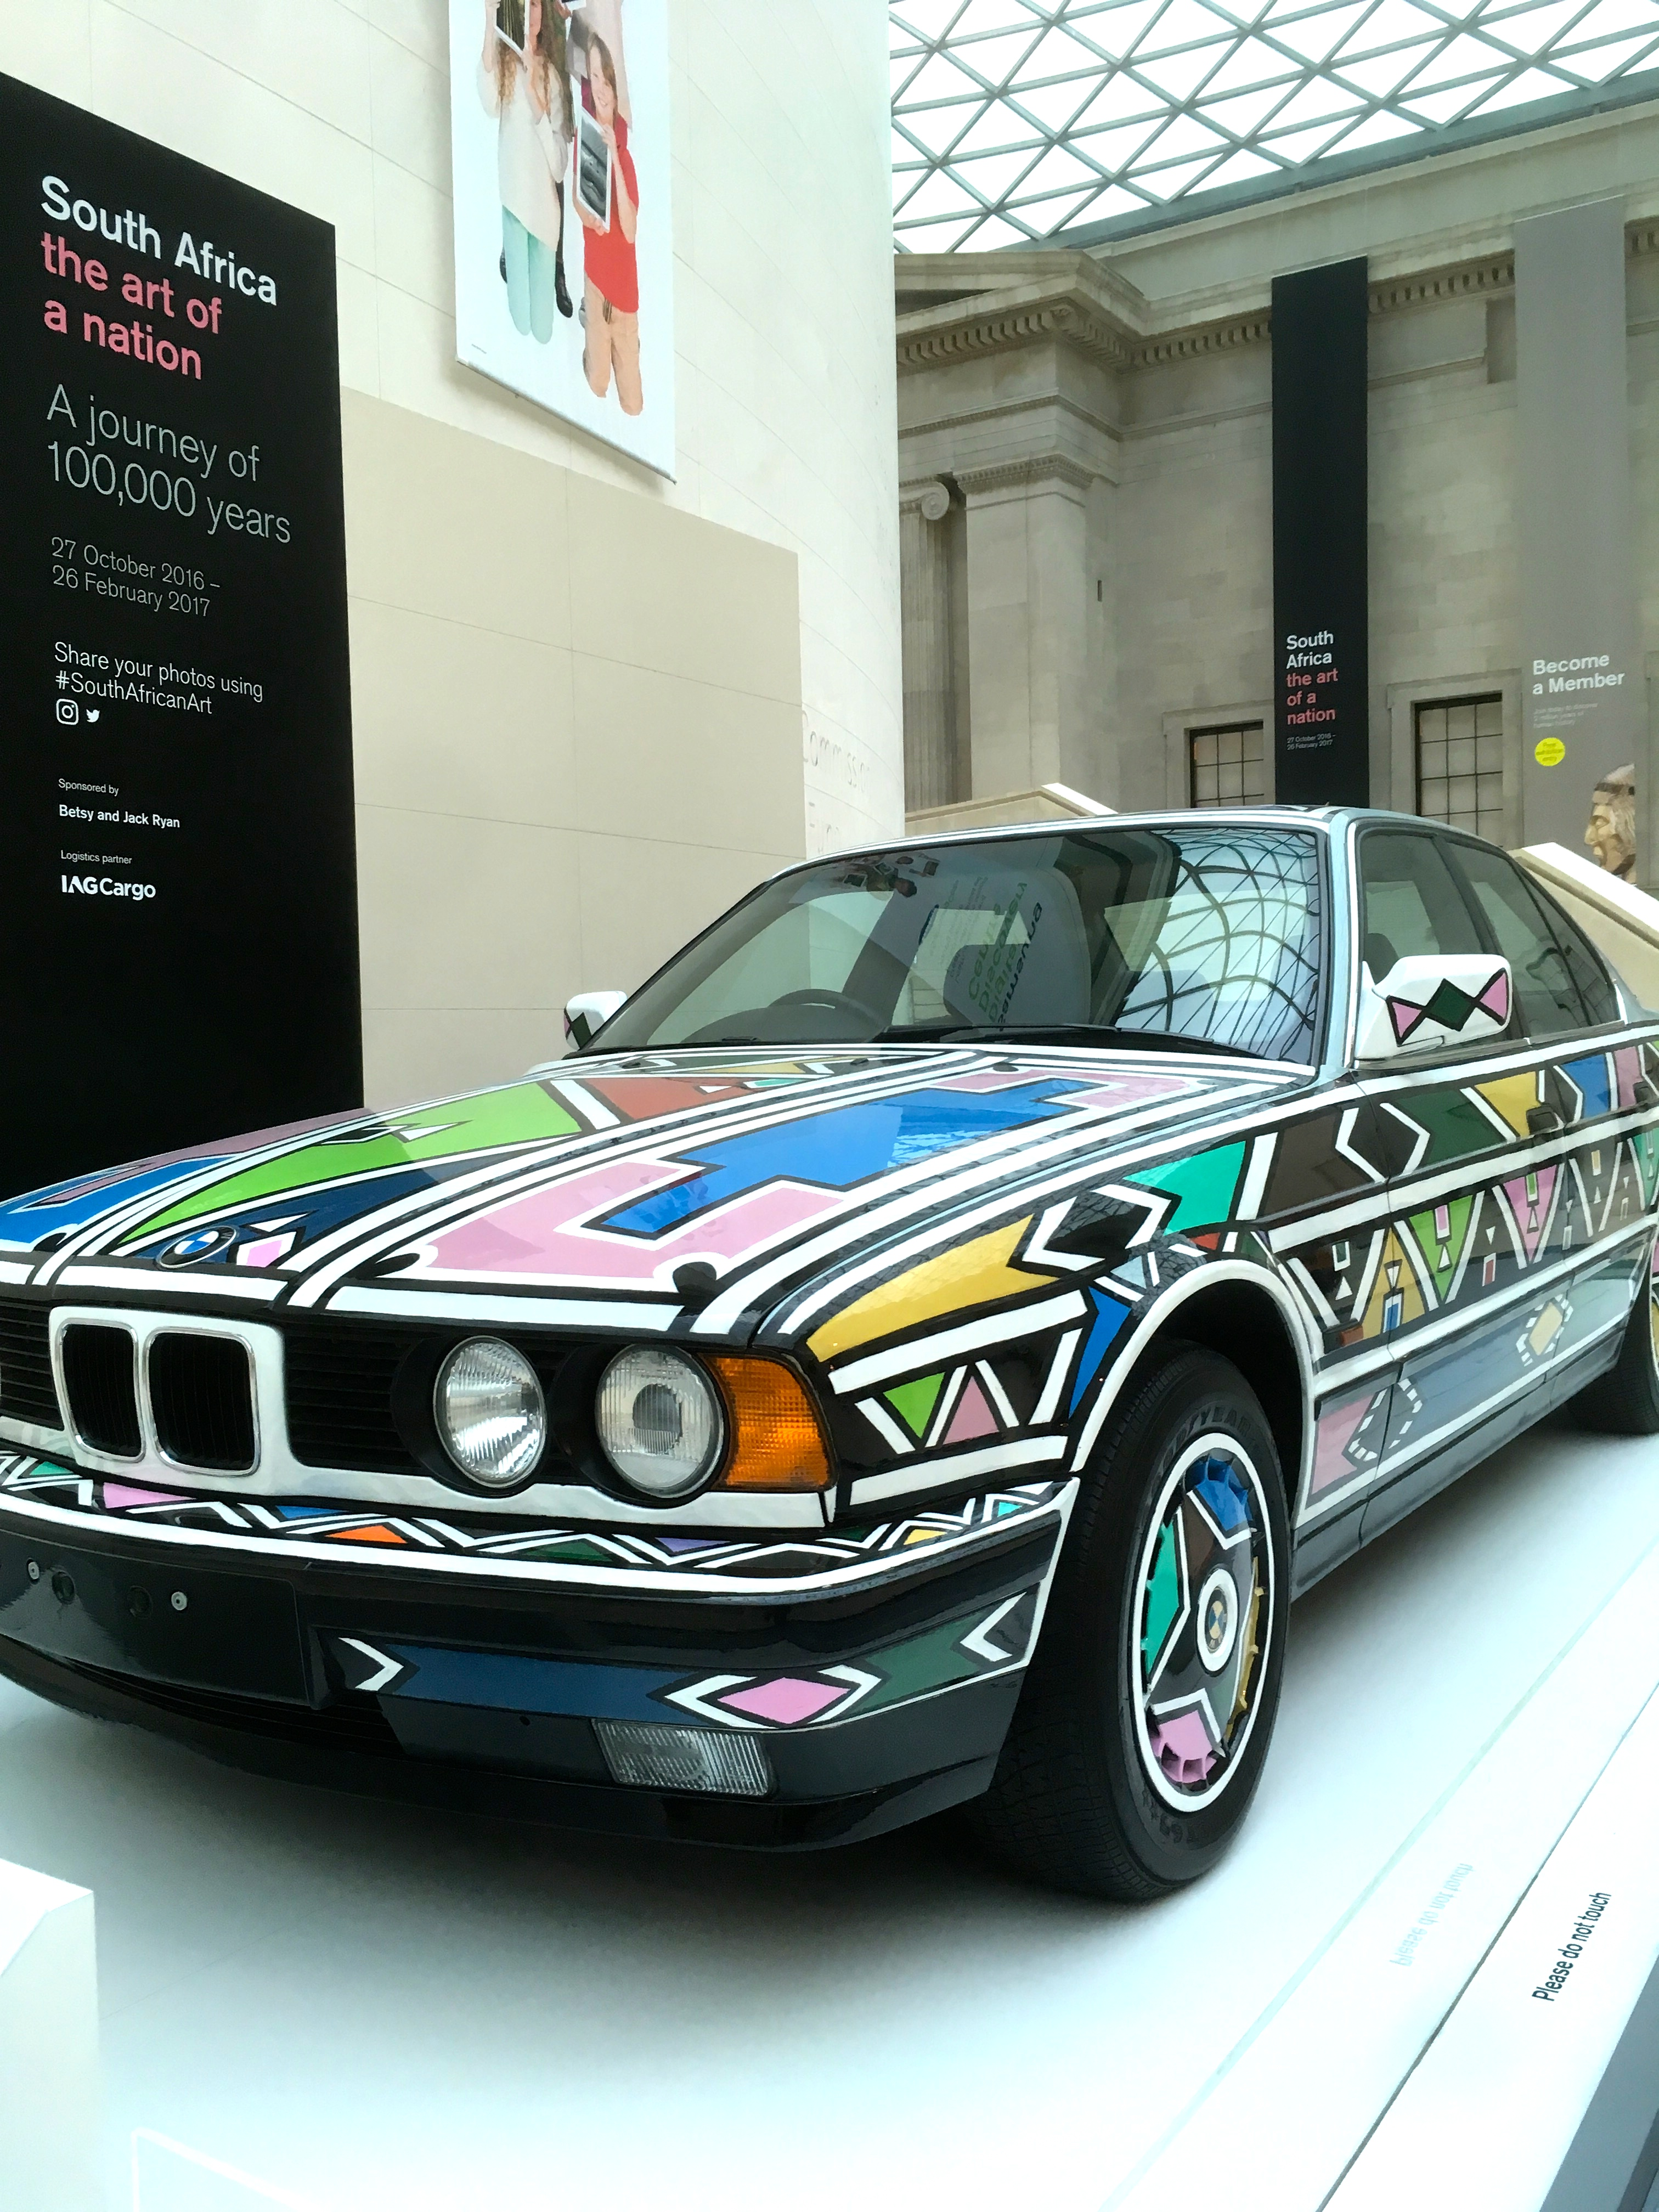 Car transformed into Ndebele Art